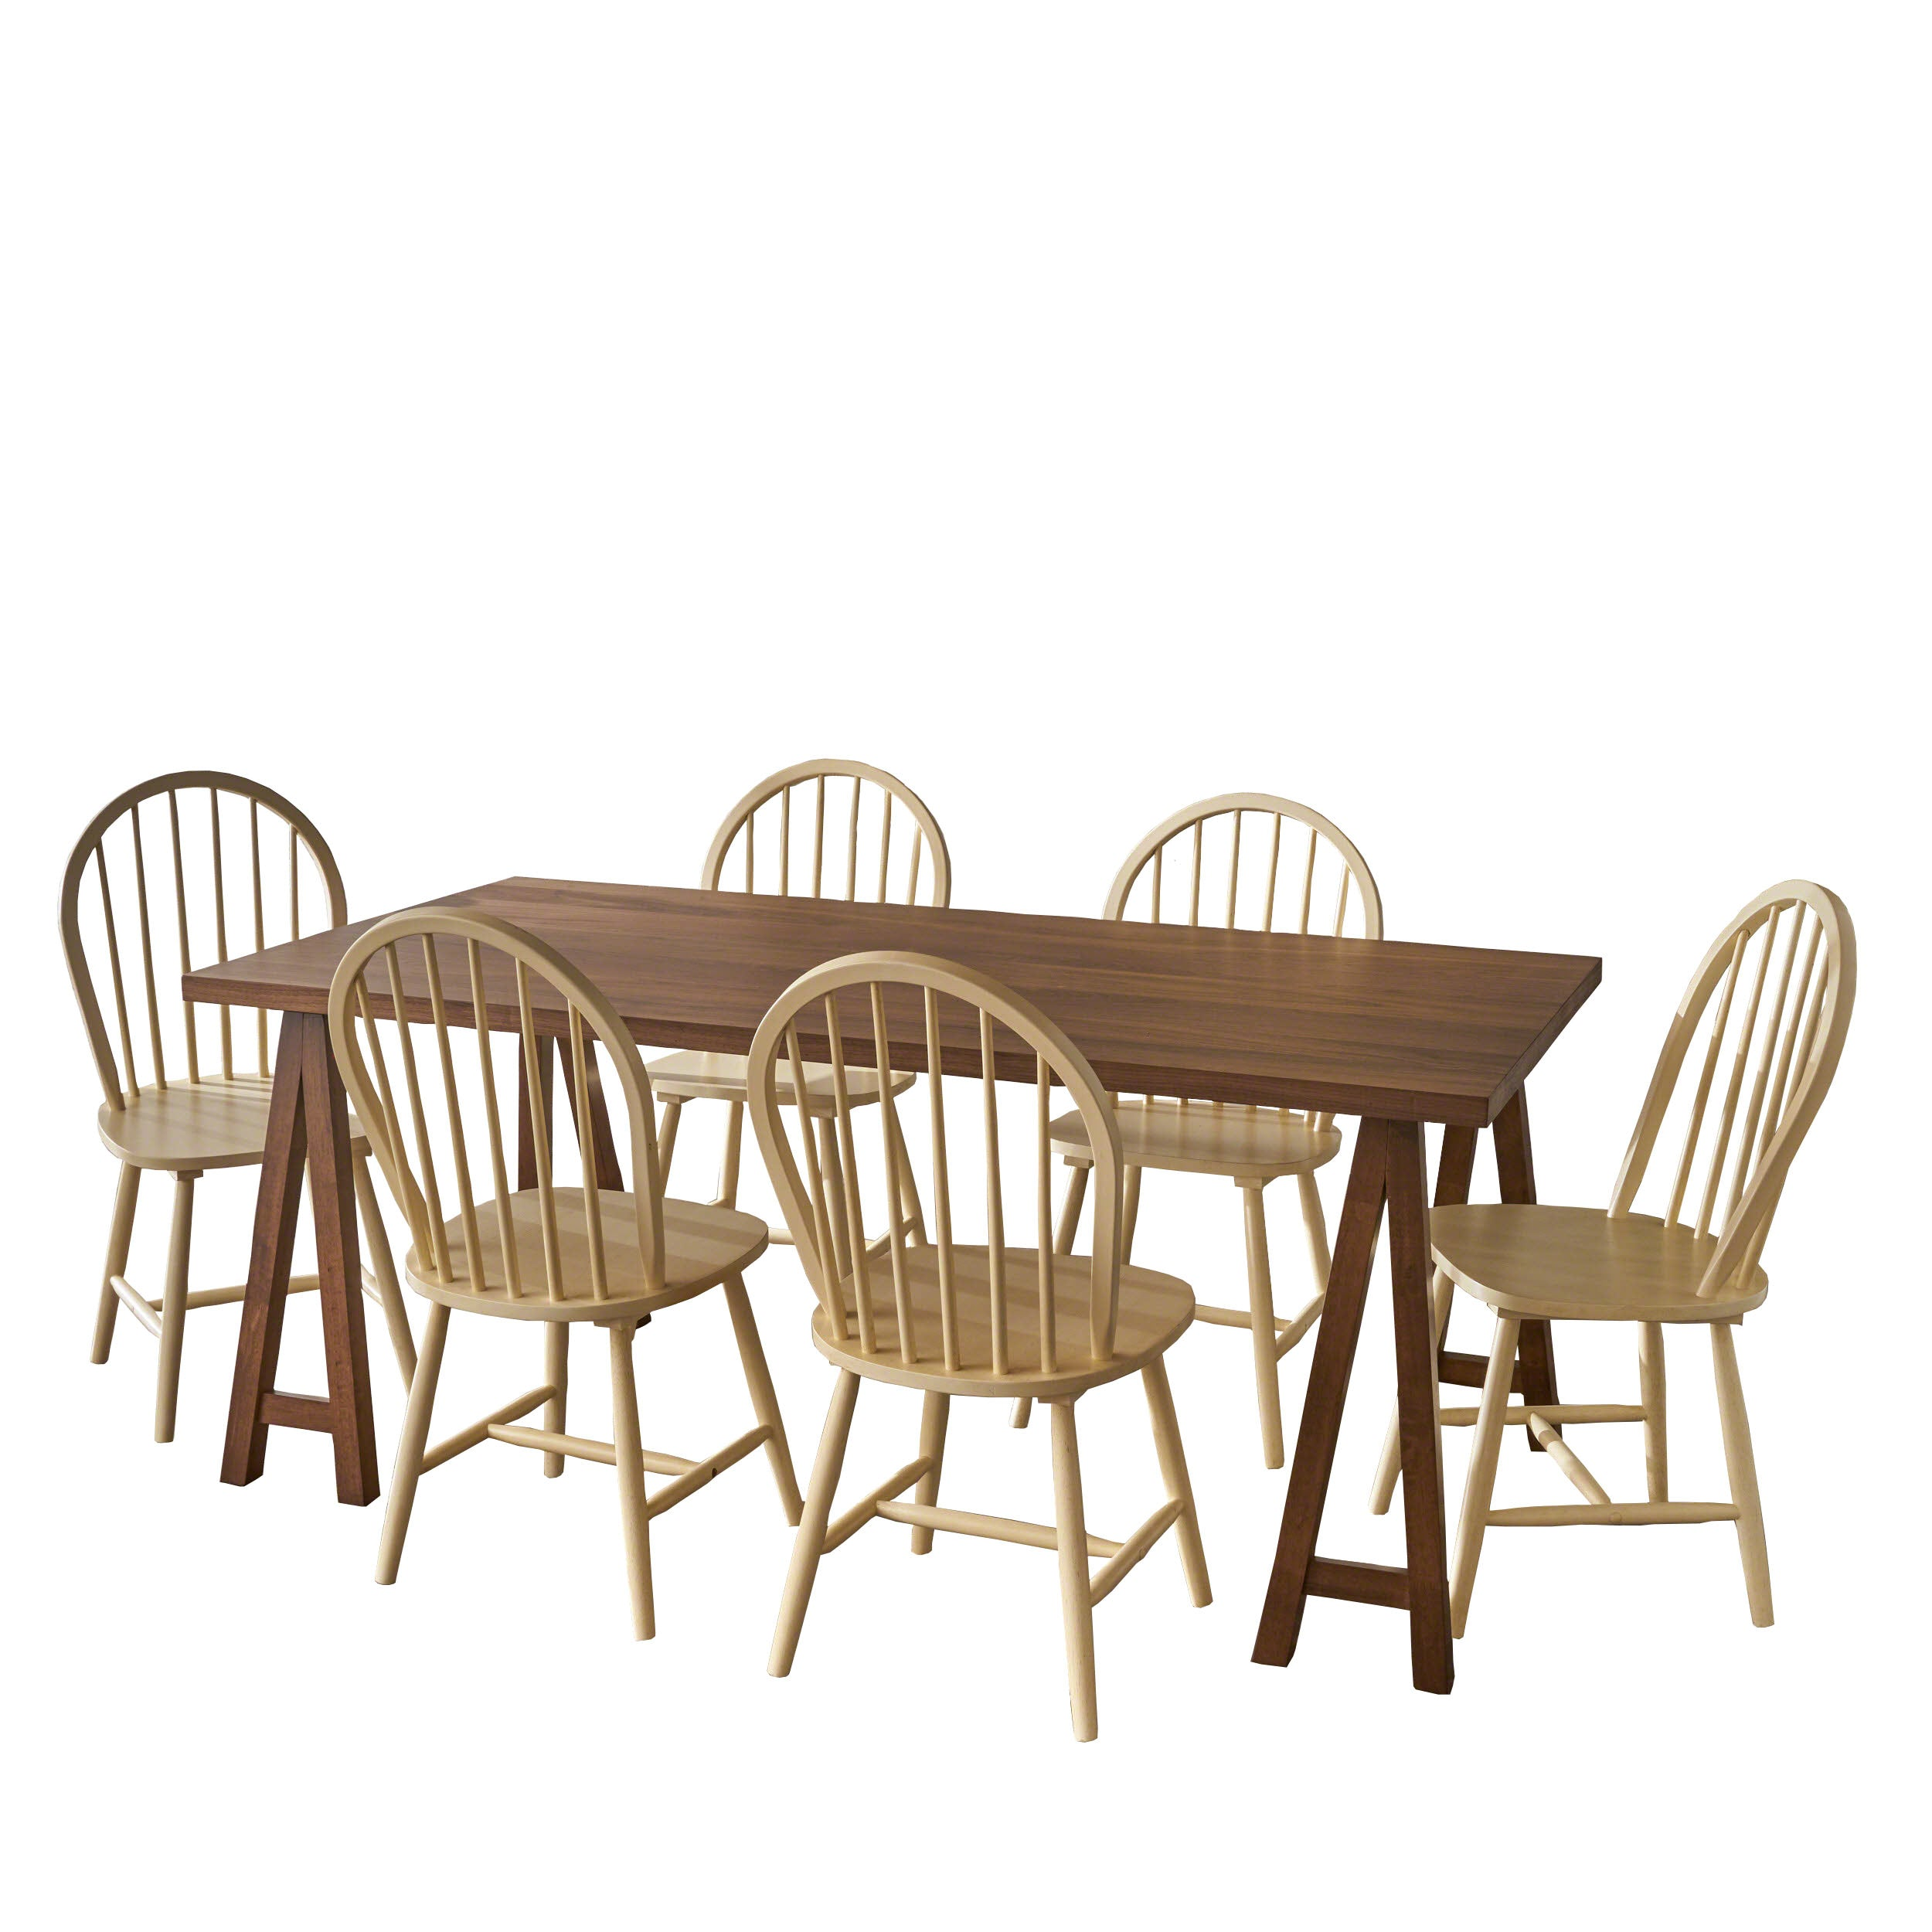 Angela Farmhouse Cottage 7 Piece Faux Wood Dining Set with Rubberwood Chairs Antique White Natural Oak